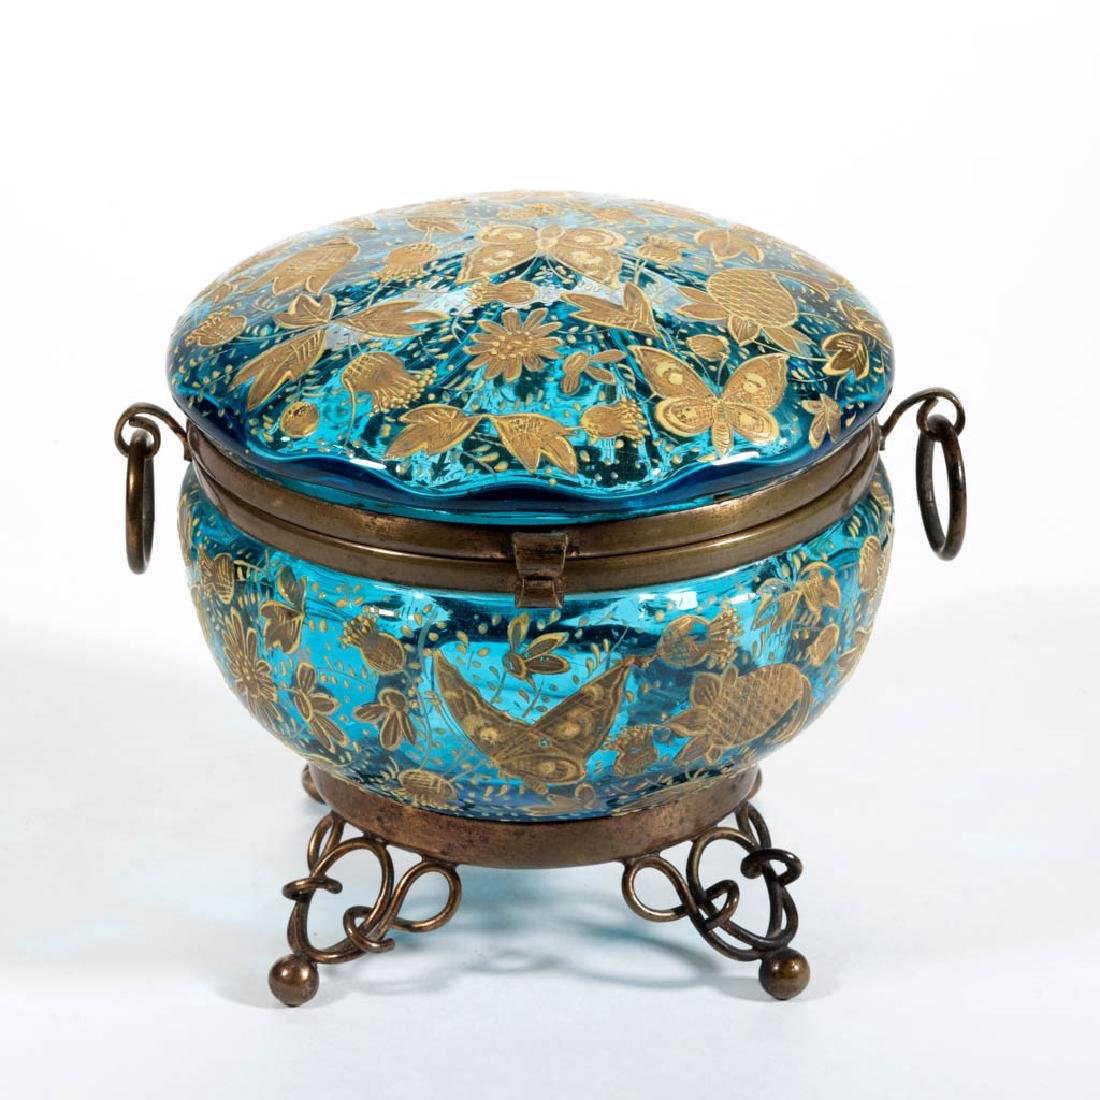 VICTORIAN ENAMEL DECORATED COVERED BOX